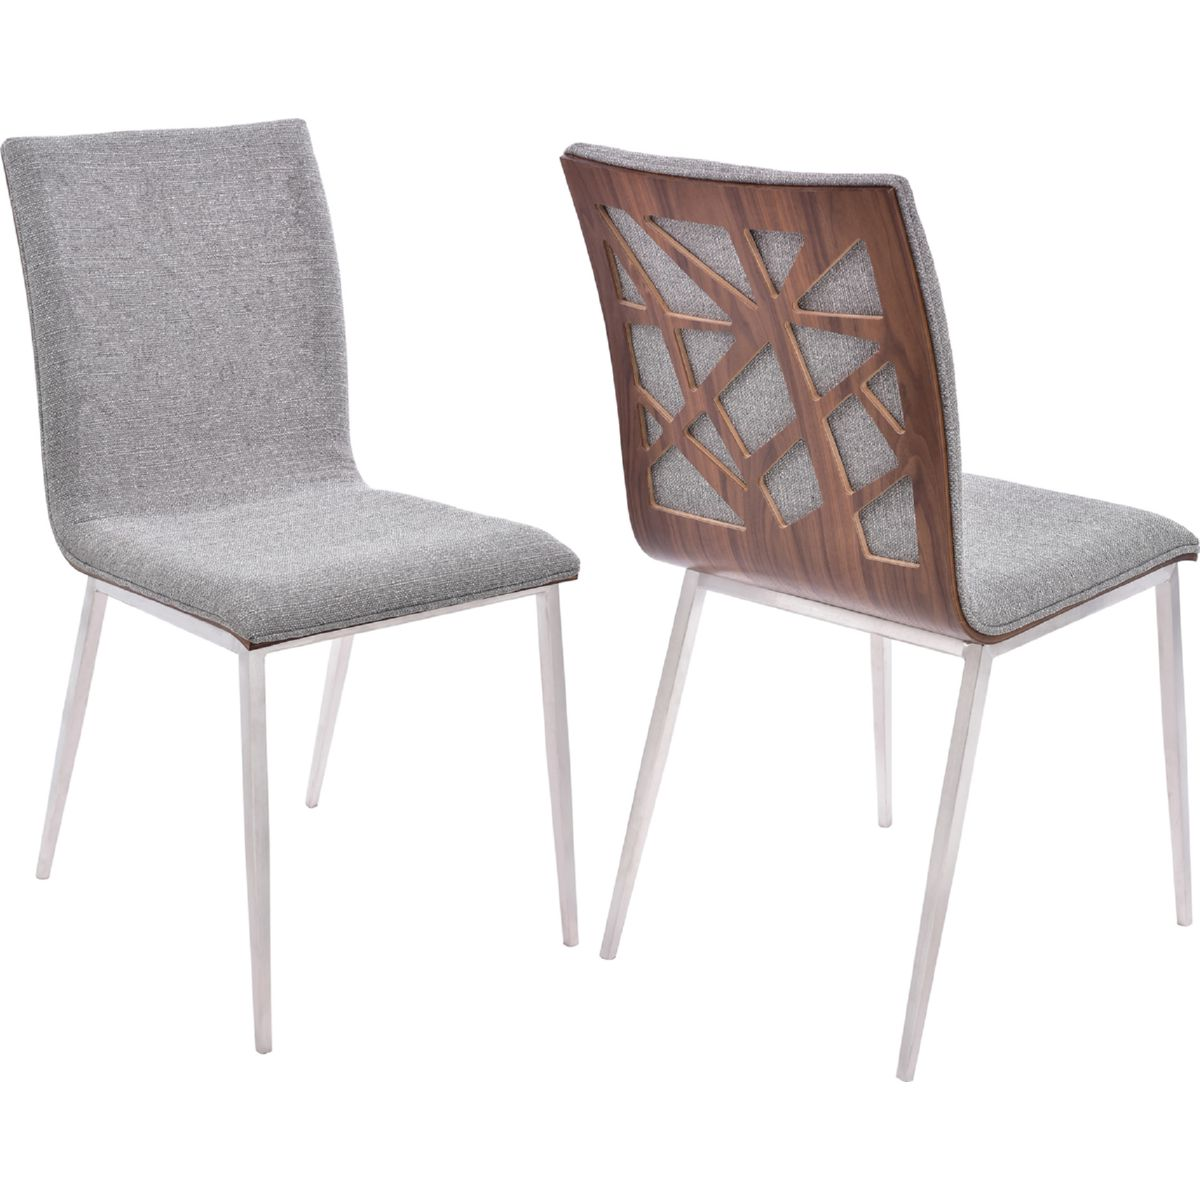 Armen Living Crystal Dining Chair In Brushed Stainless Steel W/ Grey Fabric  U0026 Walnut Back (Set Of 2)